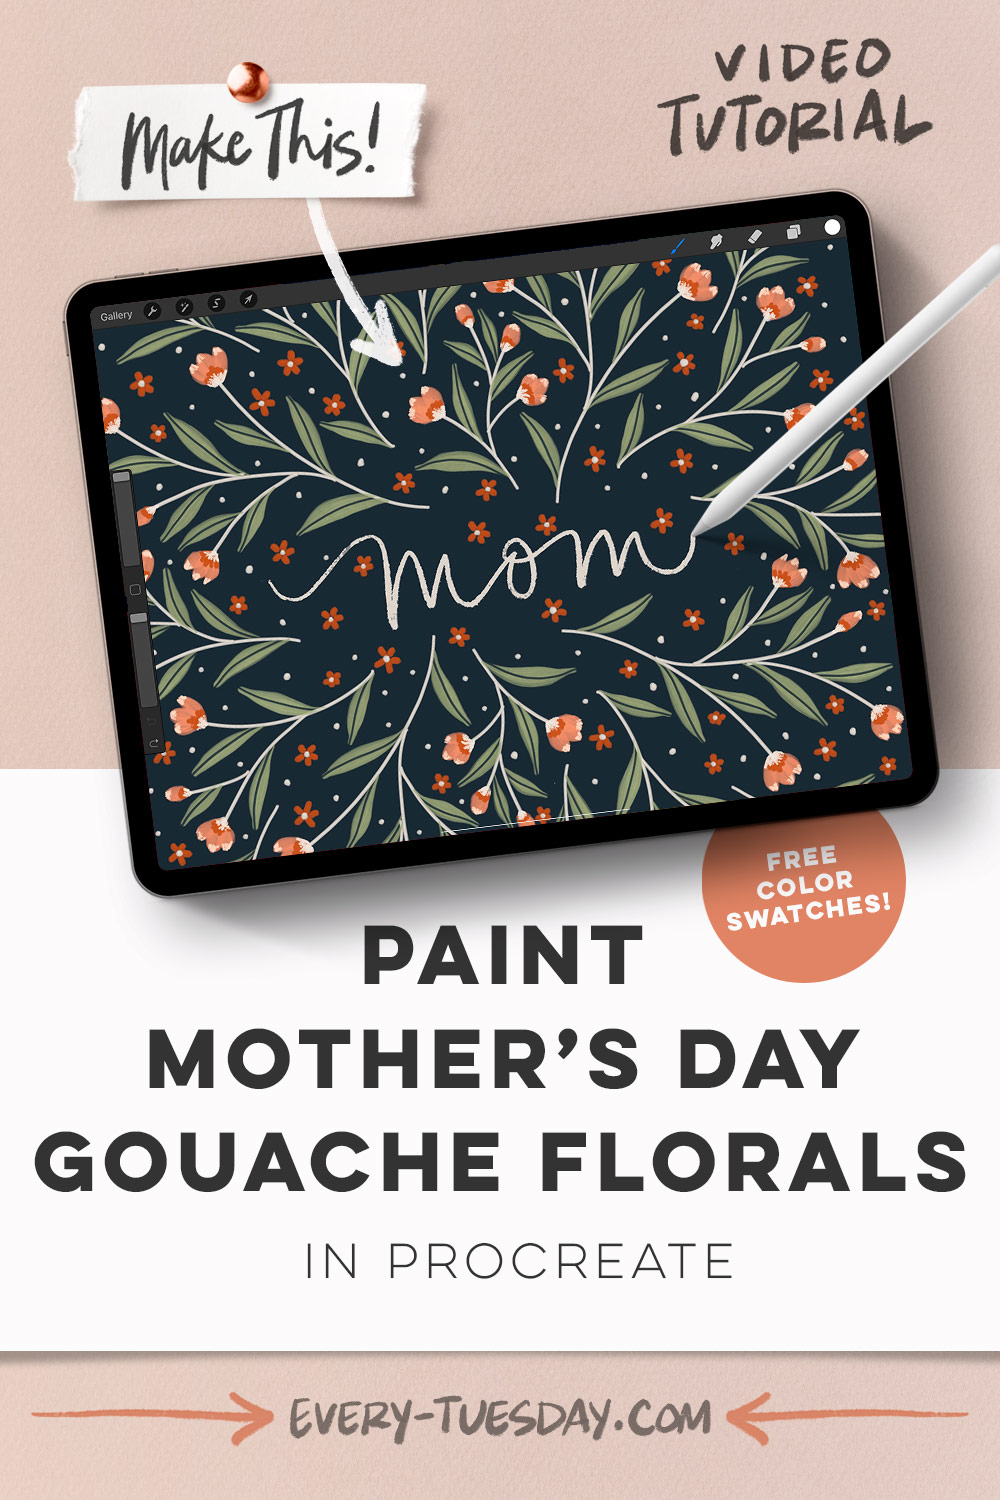 Paint Mother's Day Gouache Florals in Procreate